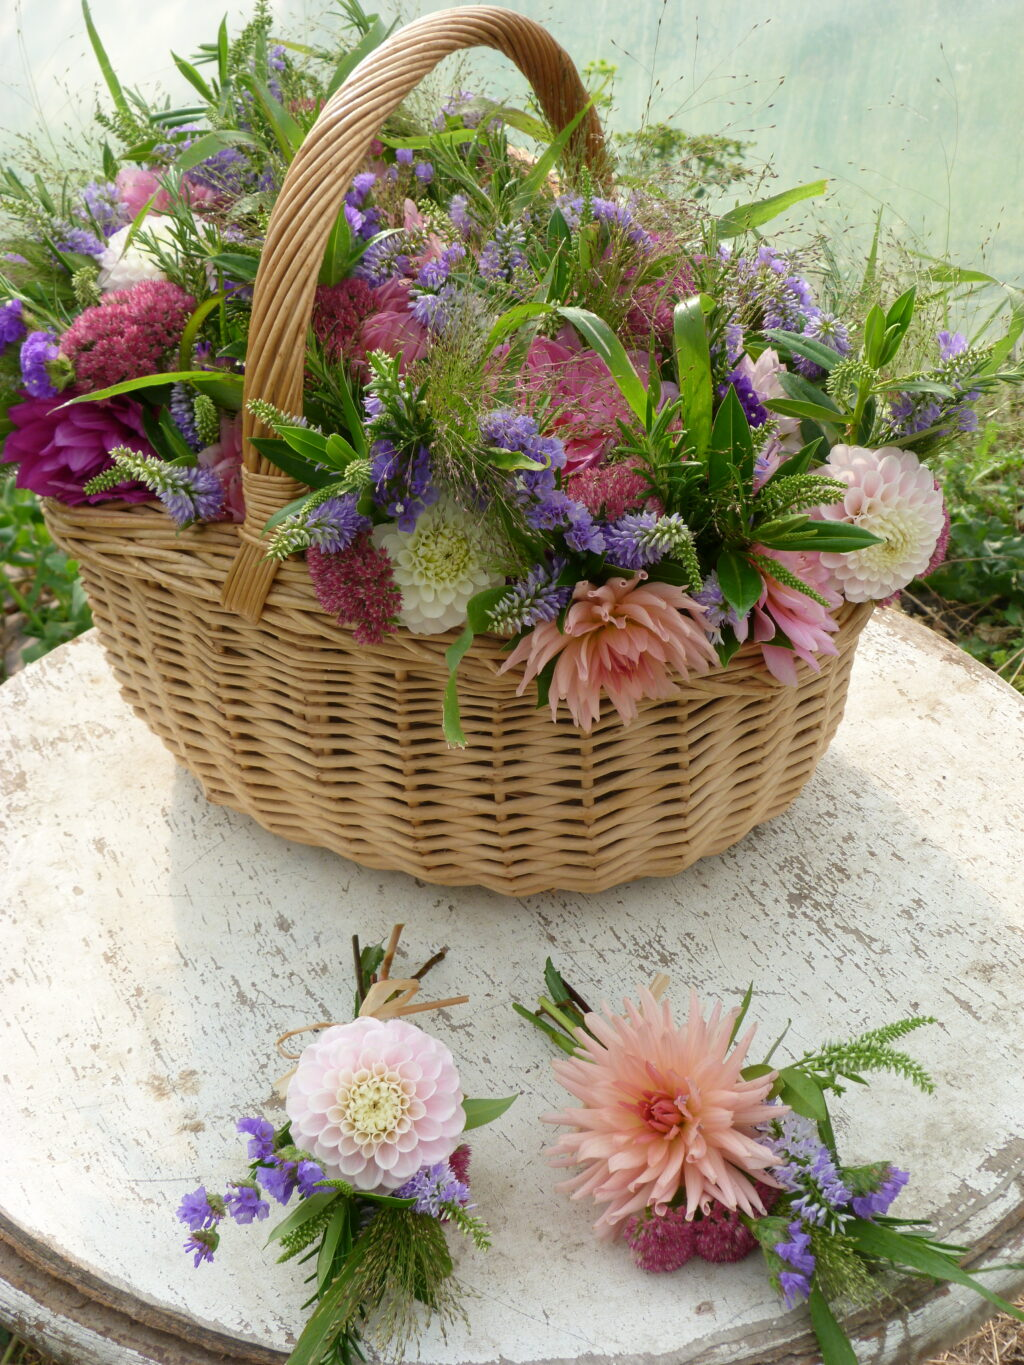 A rattan basket filled with summer flowers for a funeral by The Sussex Cutting Garden.